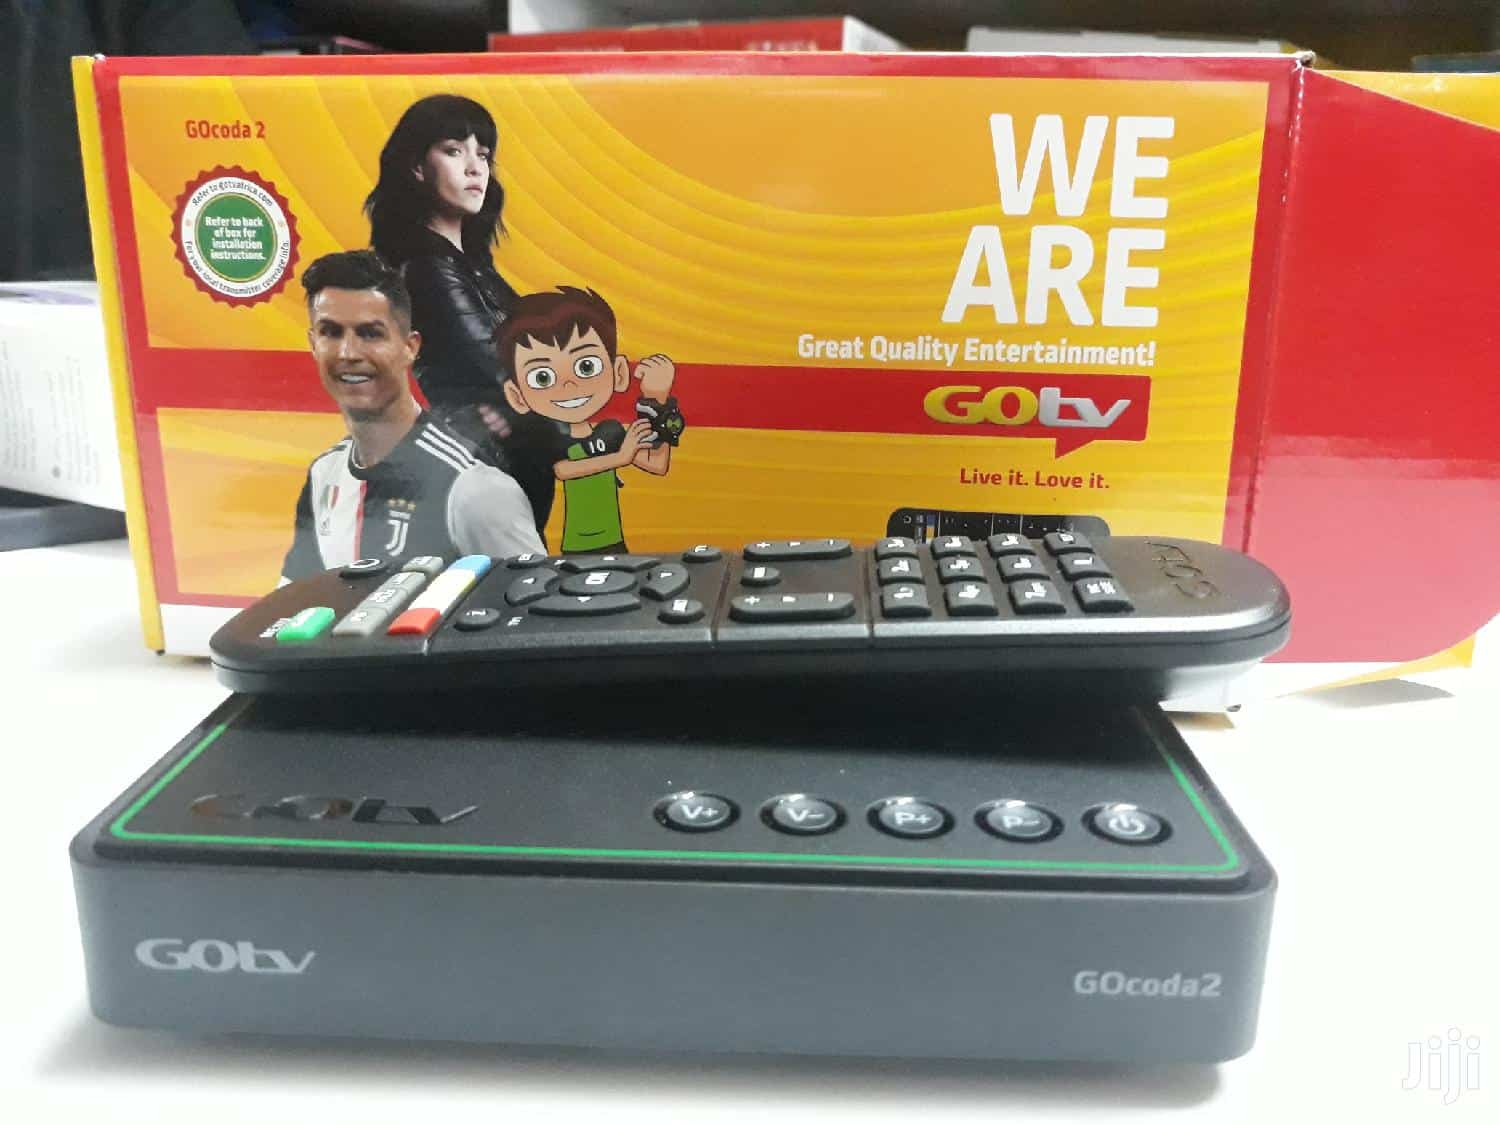 DSTV Nigeria Customer Care Phone Number, Email and Office Location